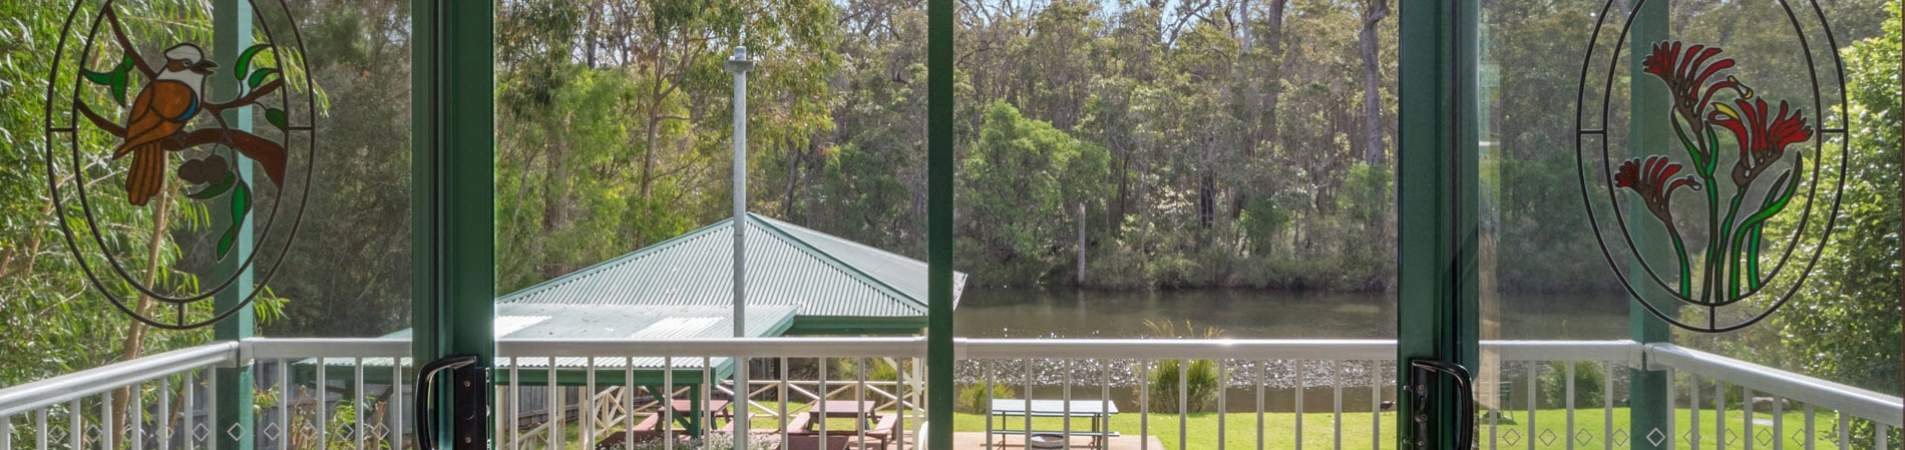 riverview tourist park margaret river accommodation - banner 4